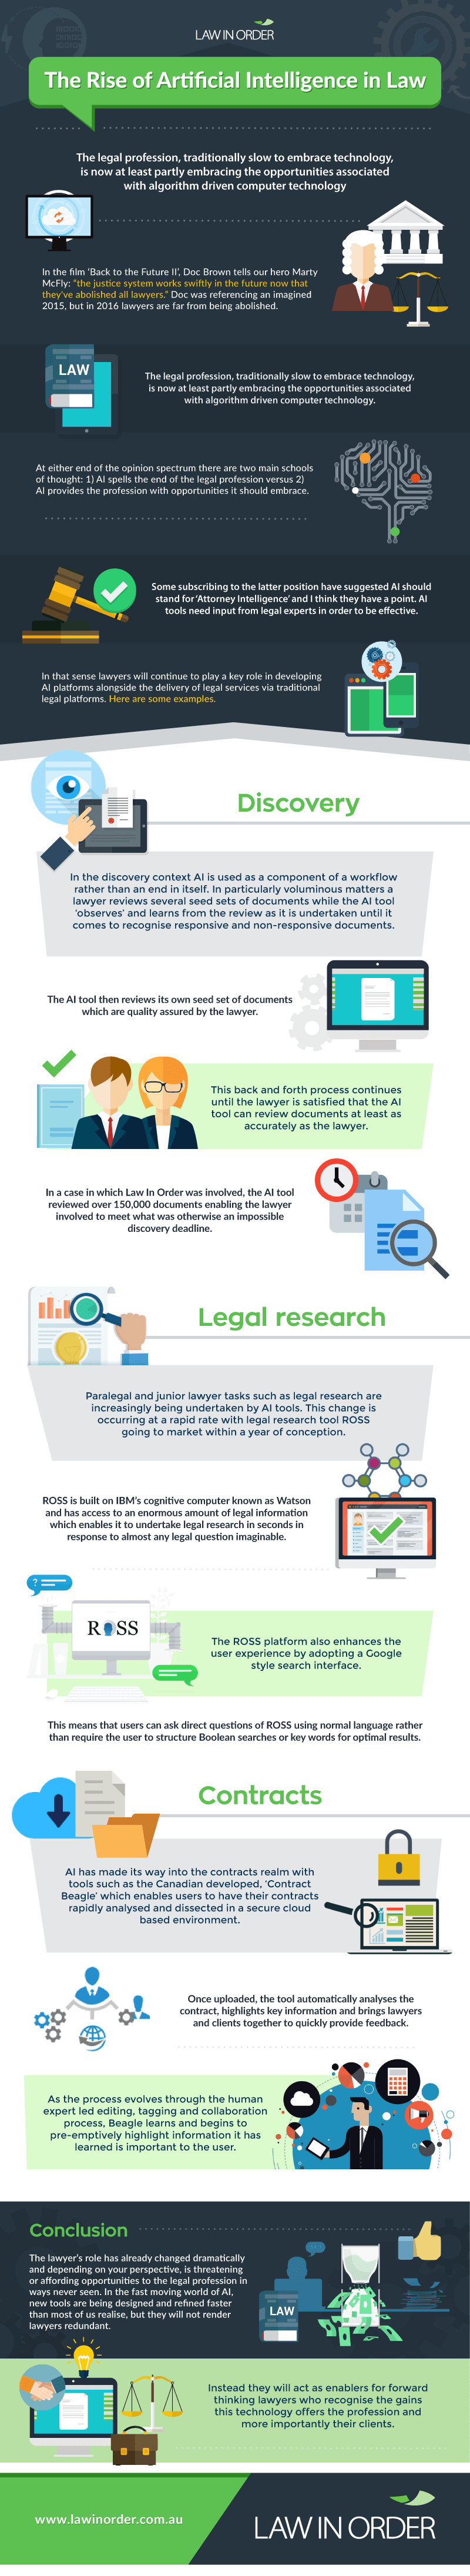 The Rise of Artificial Intelligence in Law – An Infographic